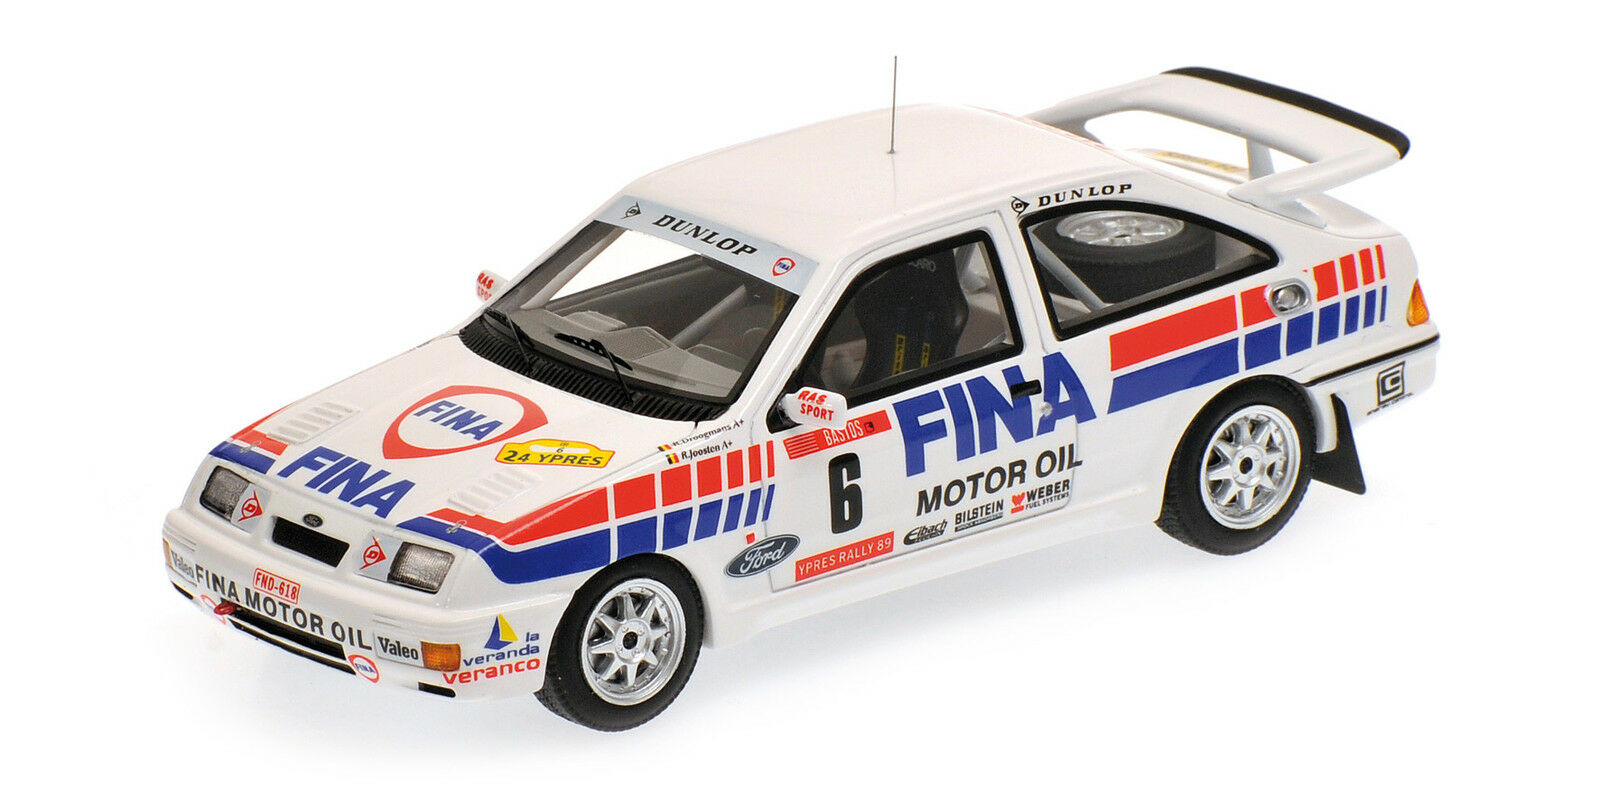 Ford Sierra Rs Cosworth Fina DrogFemmens Joosten Winner Rally Ypres 1989 1:43 | Finement Traité